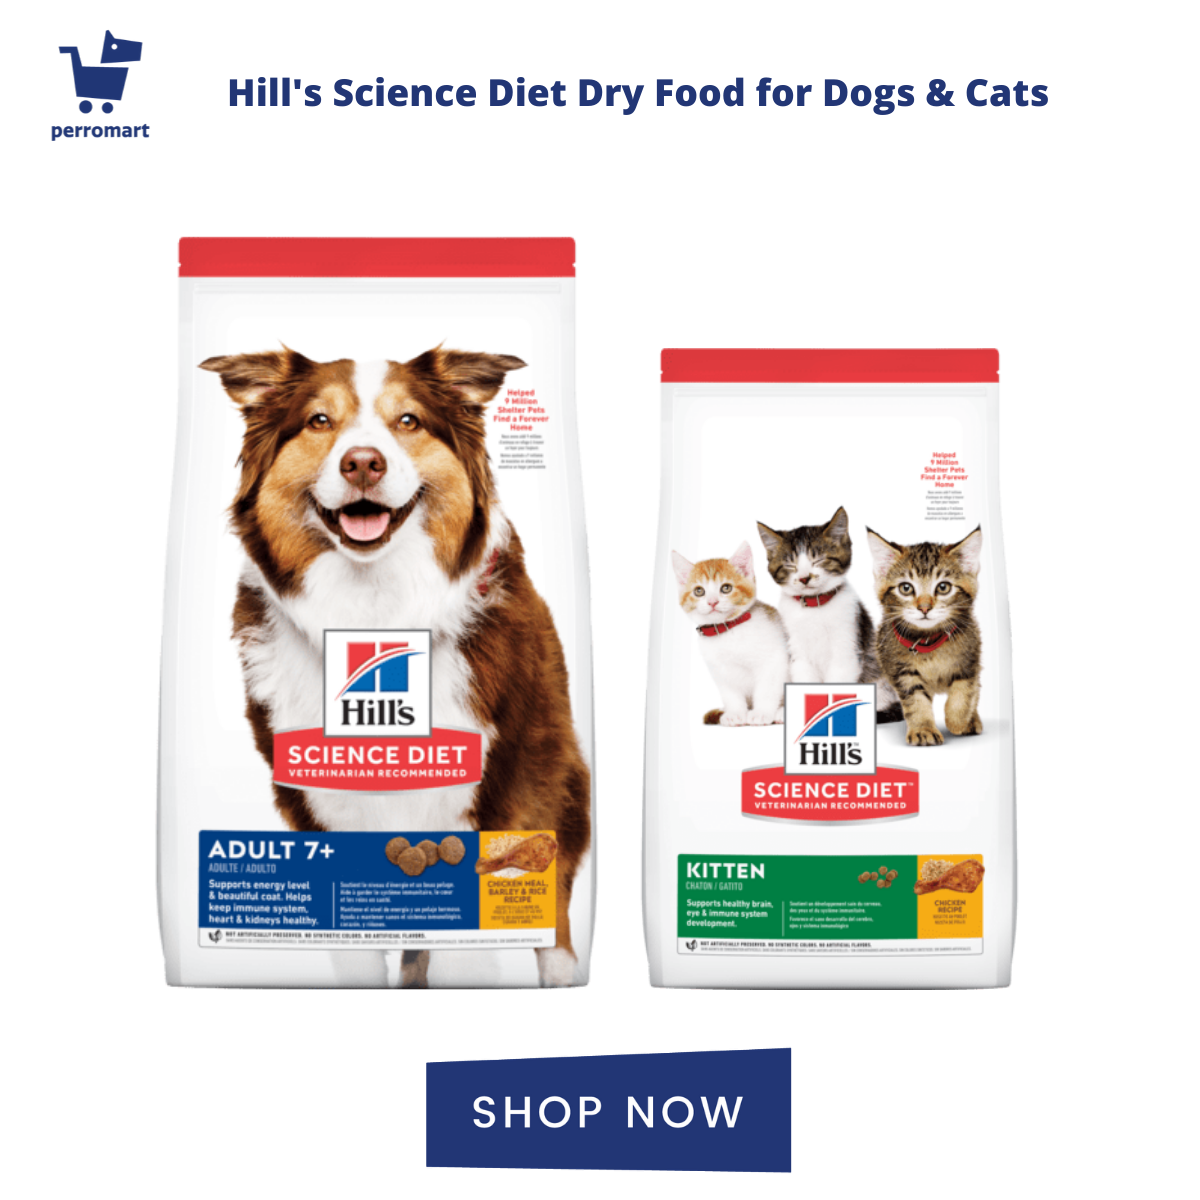 Hill's Science Diet Dog Food & Cat Food